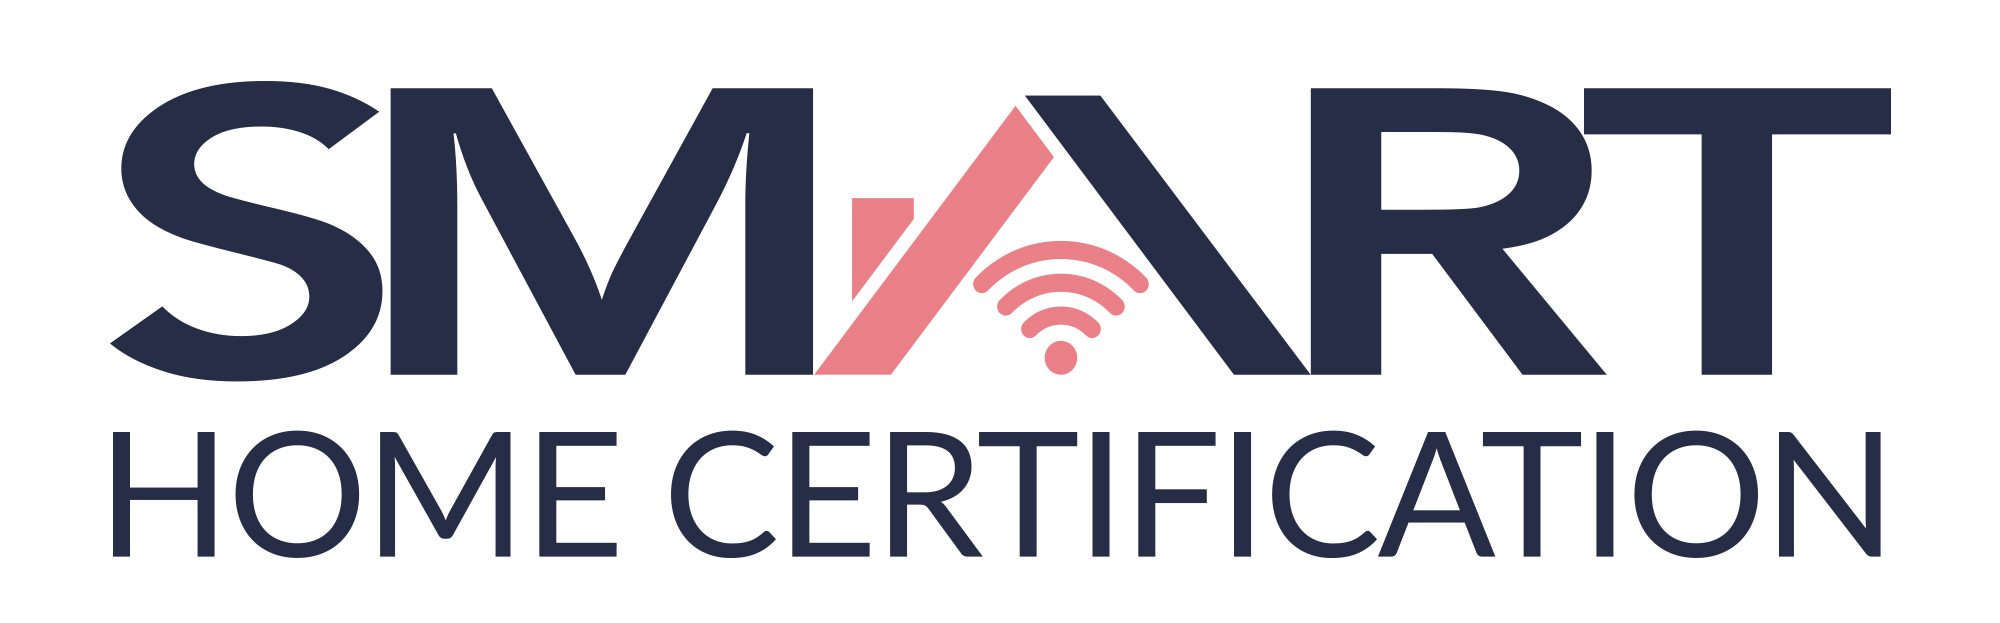 Smart-Home-Certification-Logo-02